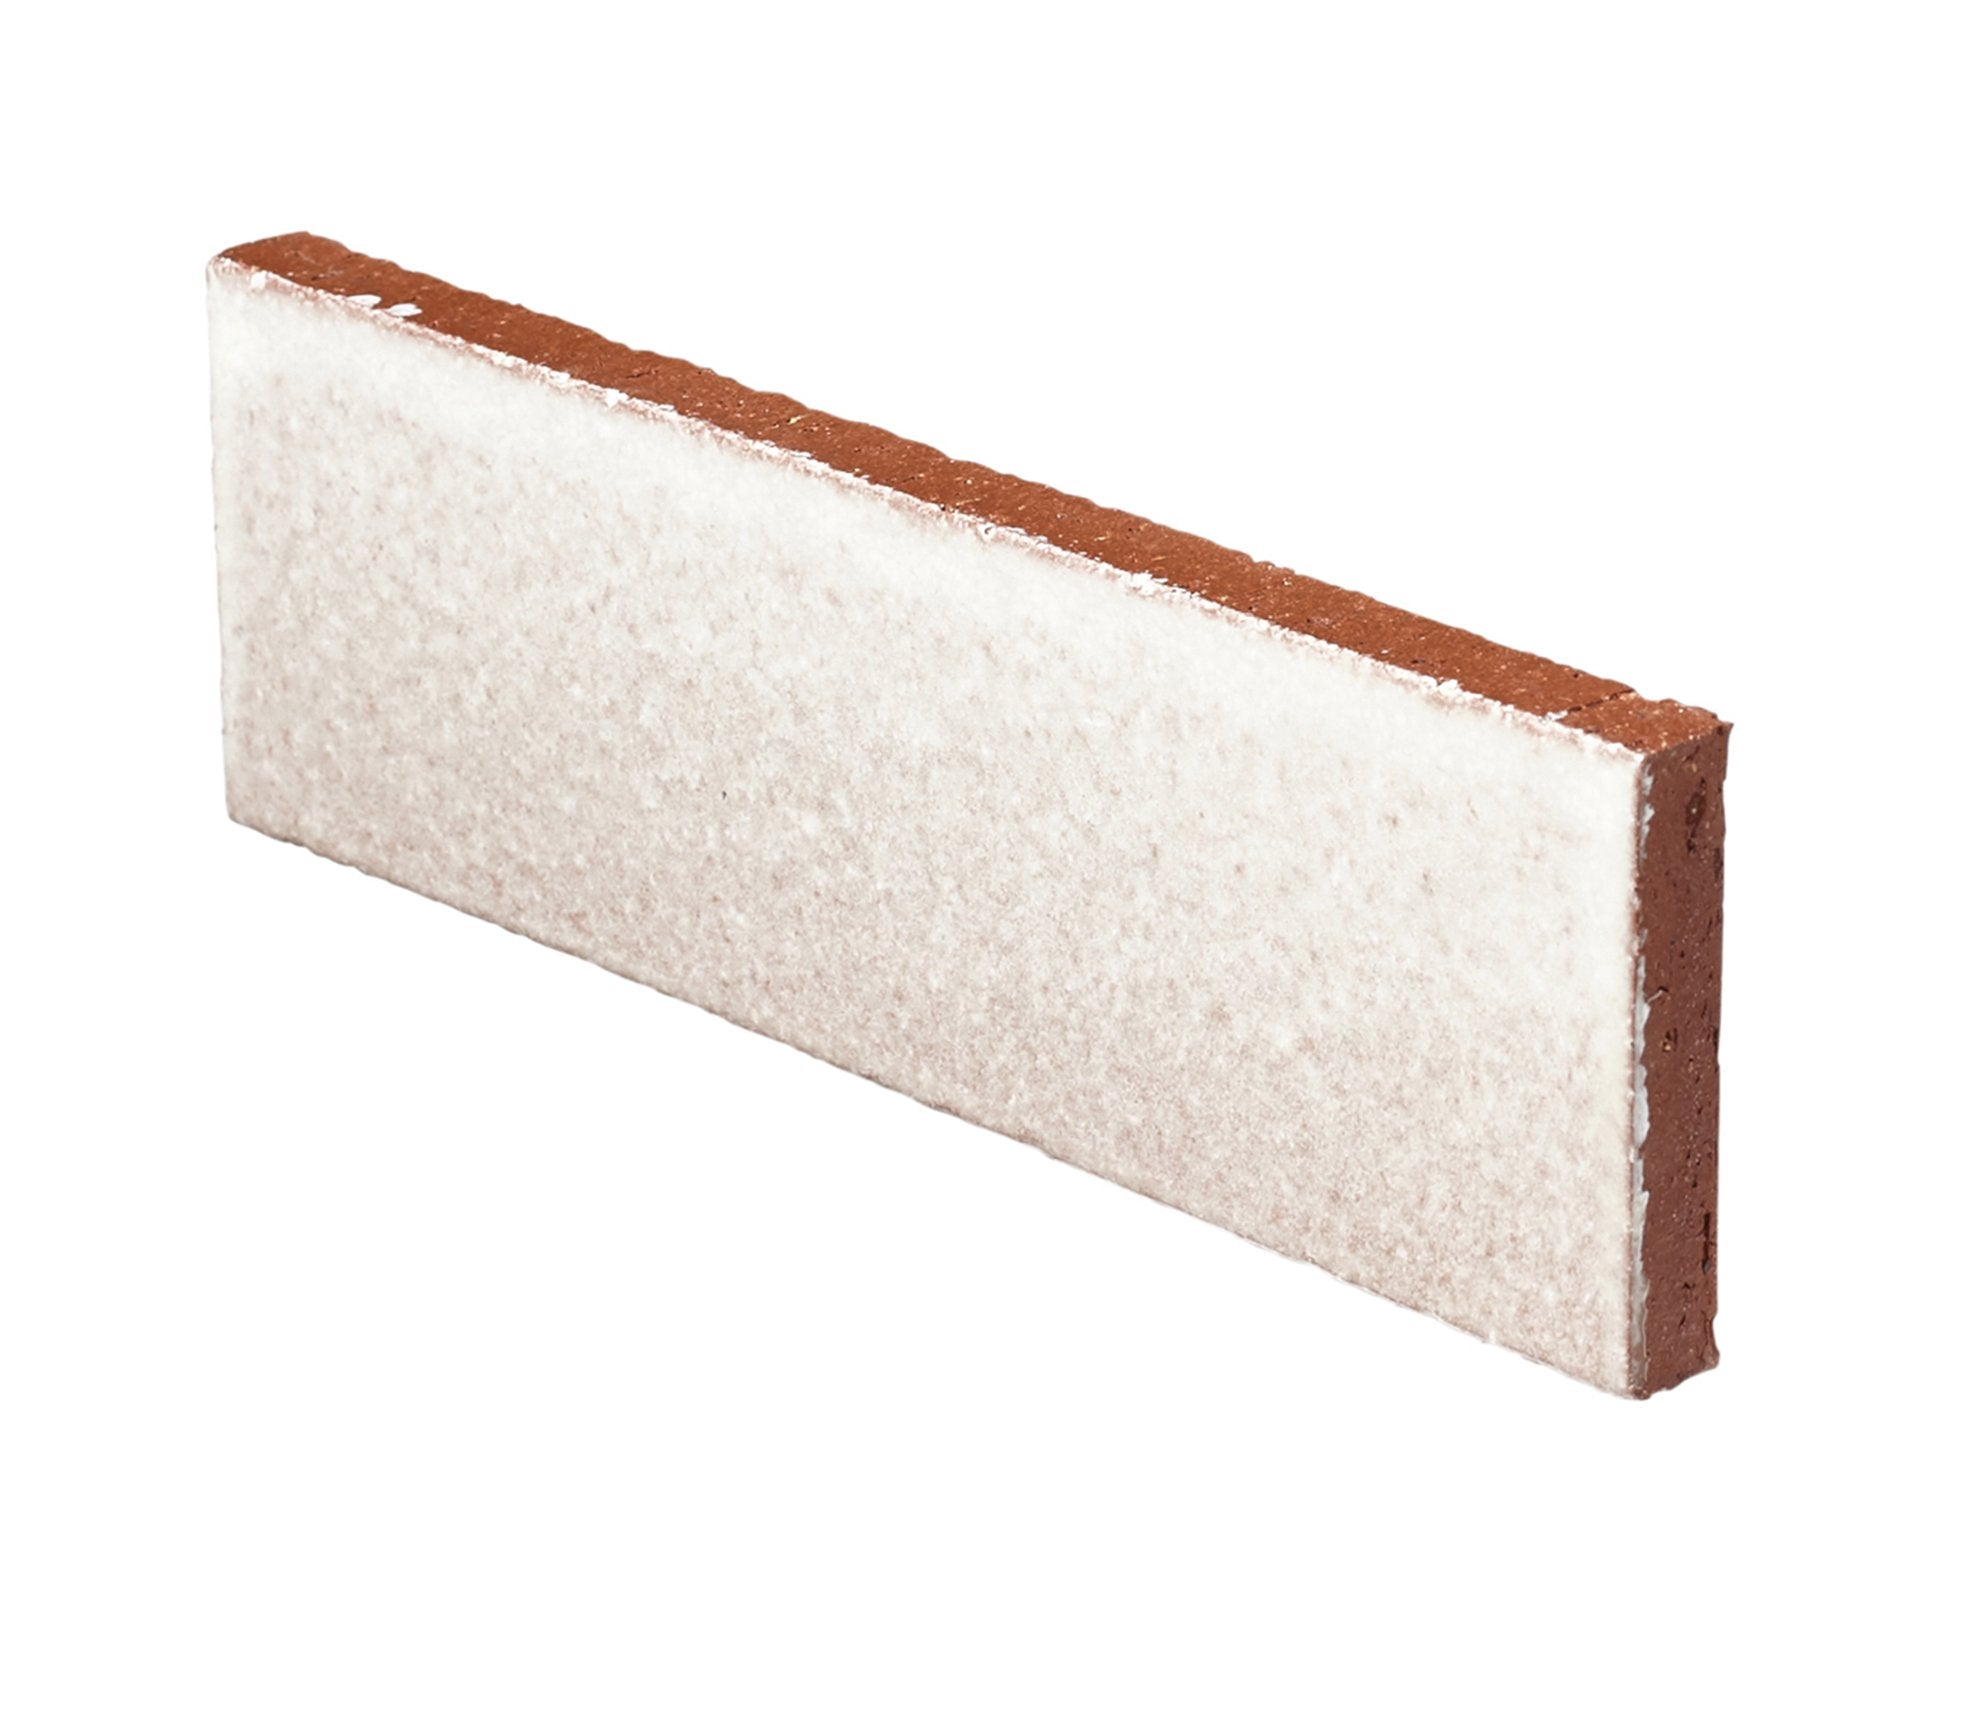 Terra Firma Glazed Bricks Product Image 15